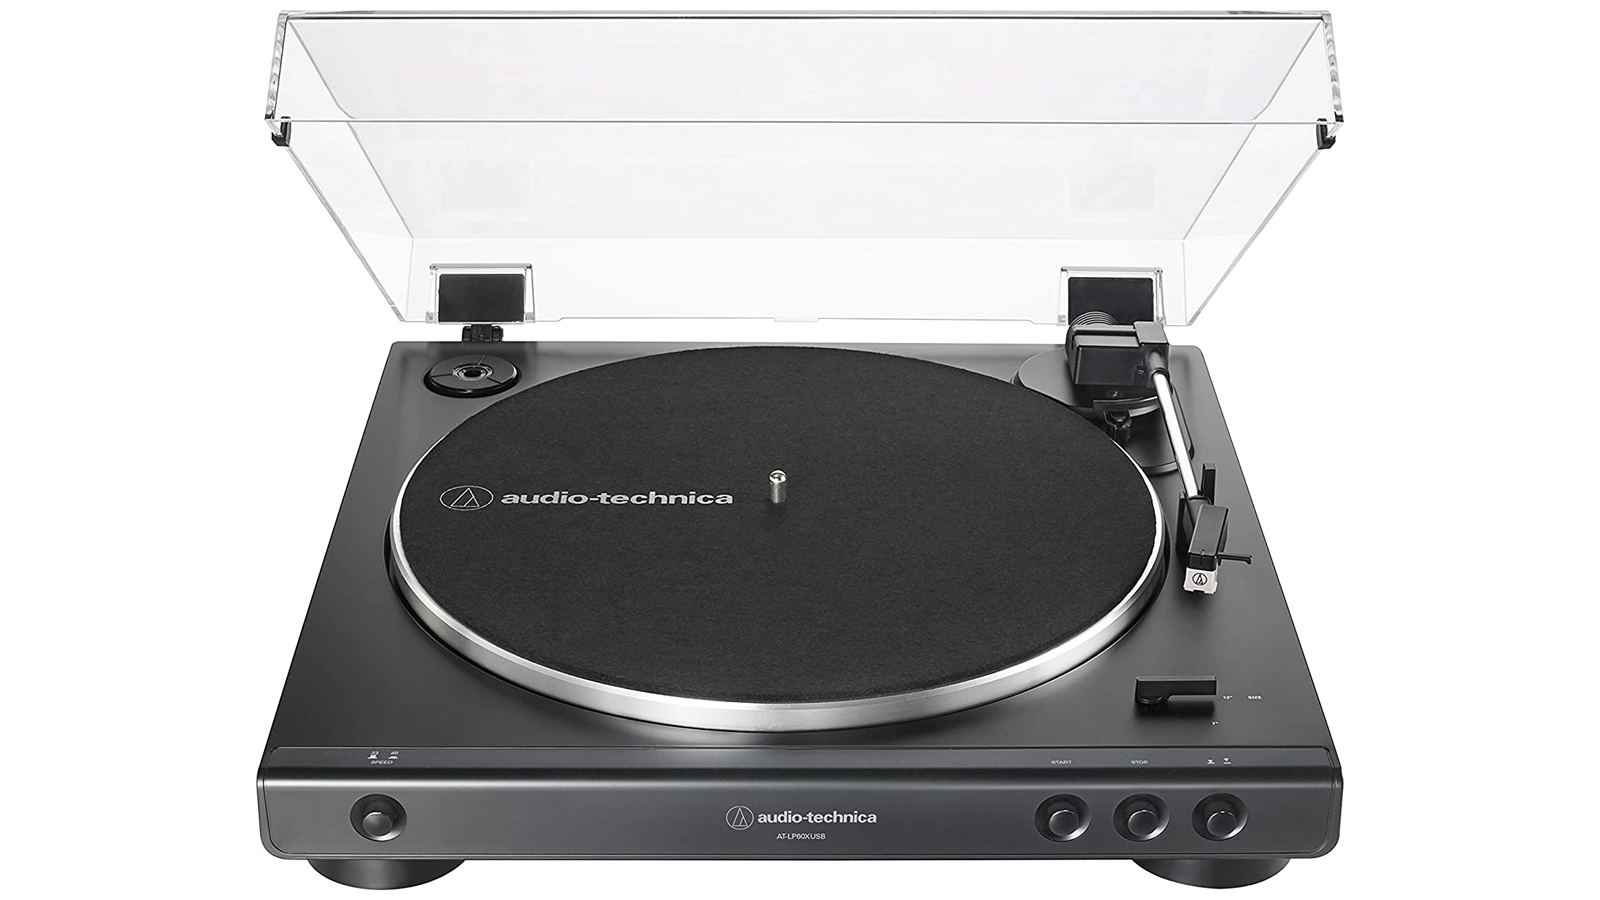 The Audio-Technica LP60X budget-friendly turntable for beginners, with attached dust cover